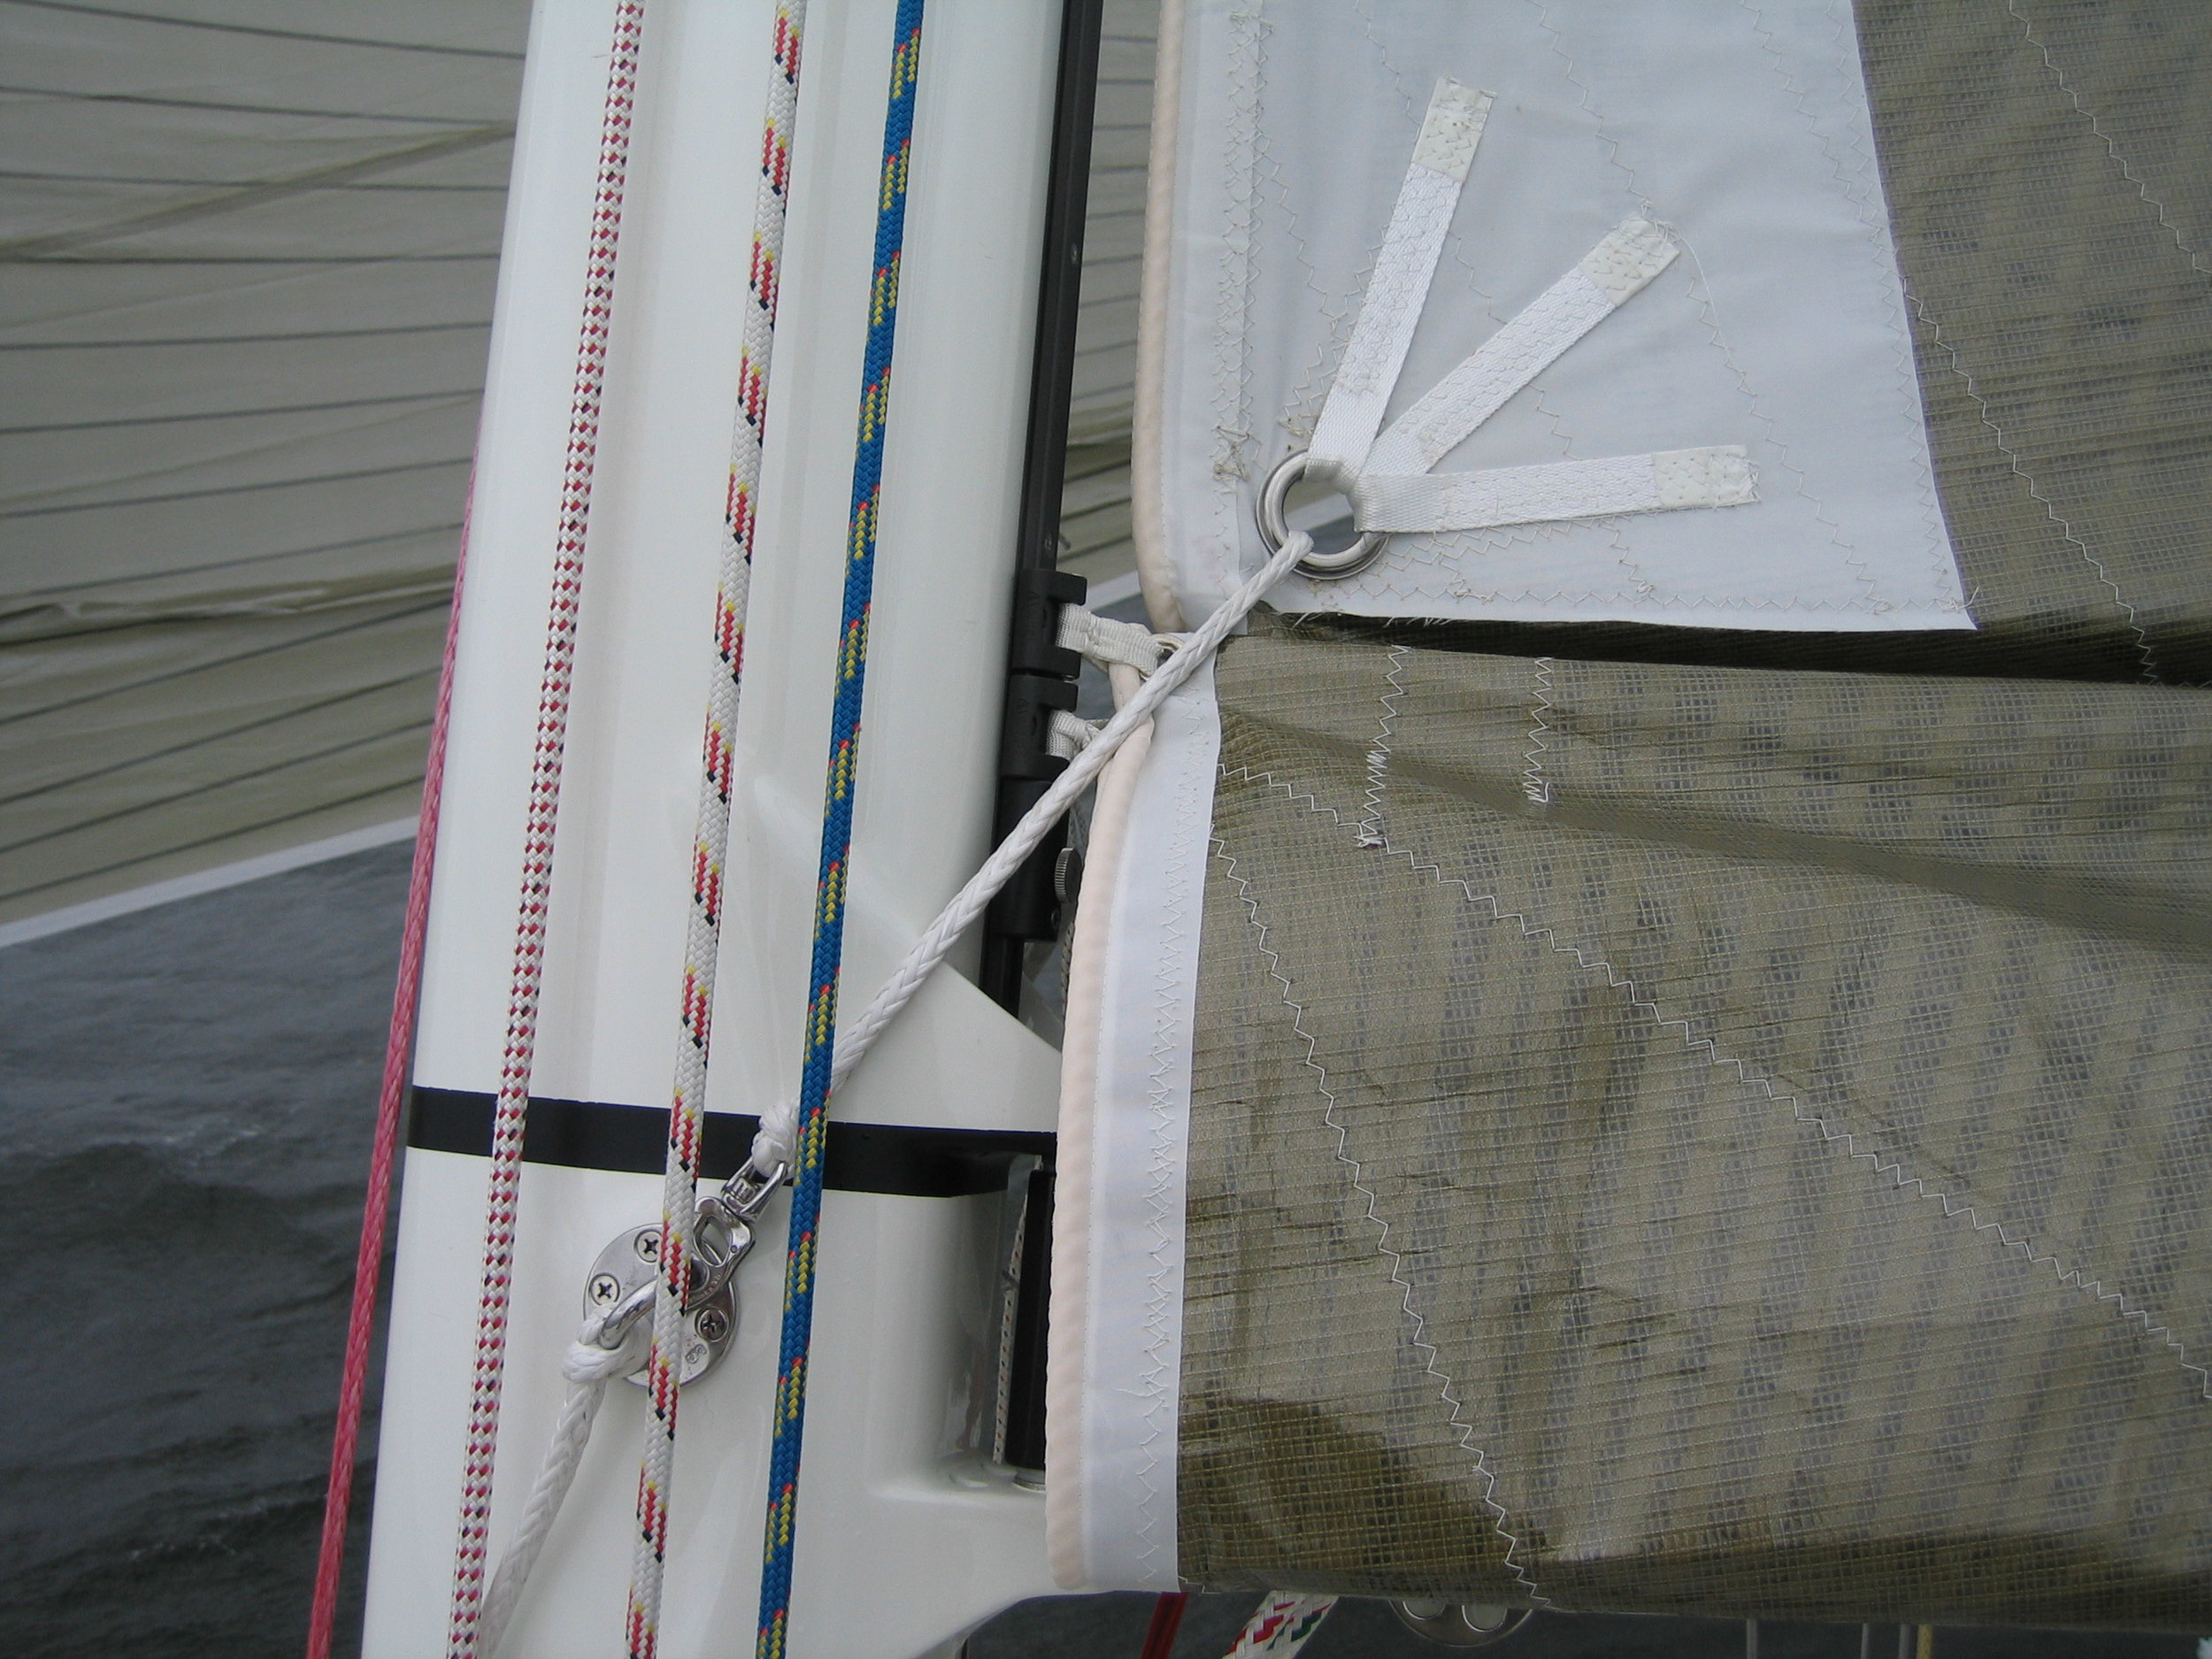 Photo 3 :The reef tack his held by the white Dyneema line that comes from a padeye on the far side of the mast, through the reef tack grommet where it snaps into place on the padeye located below the black measurement band.